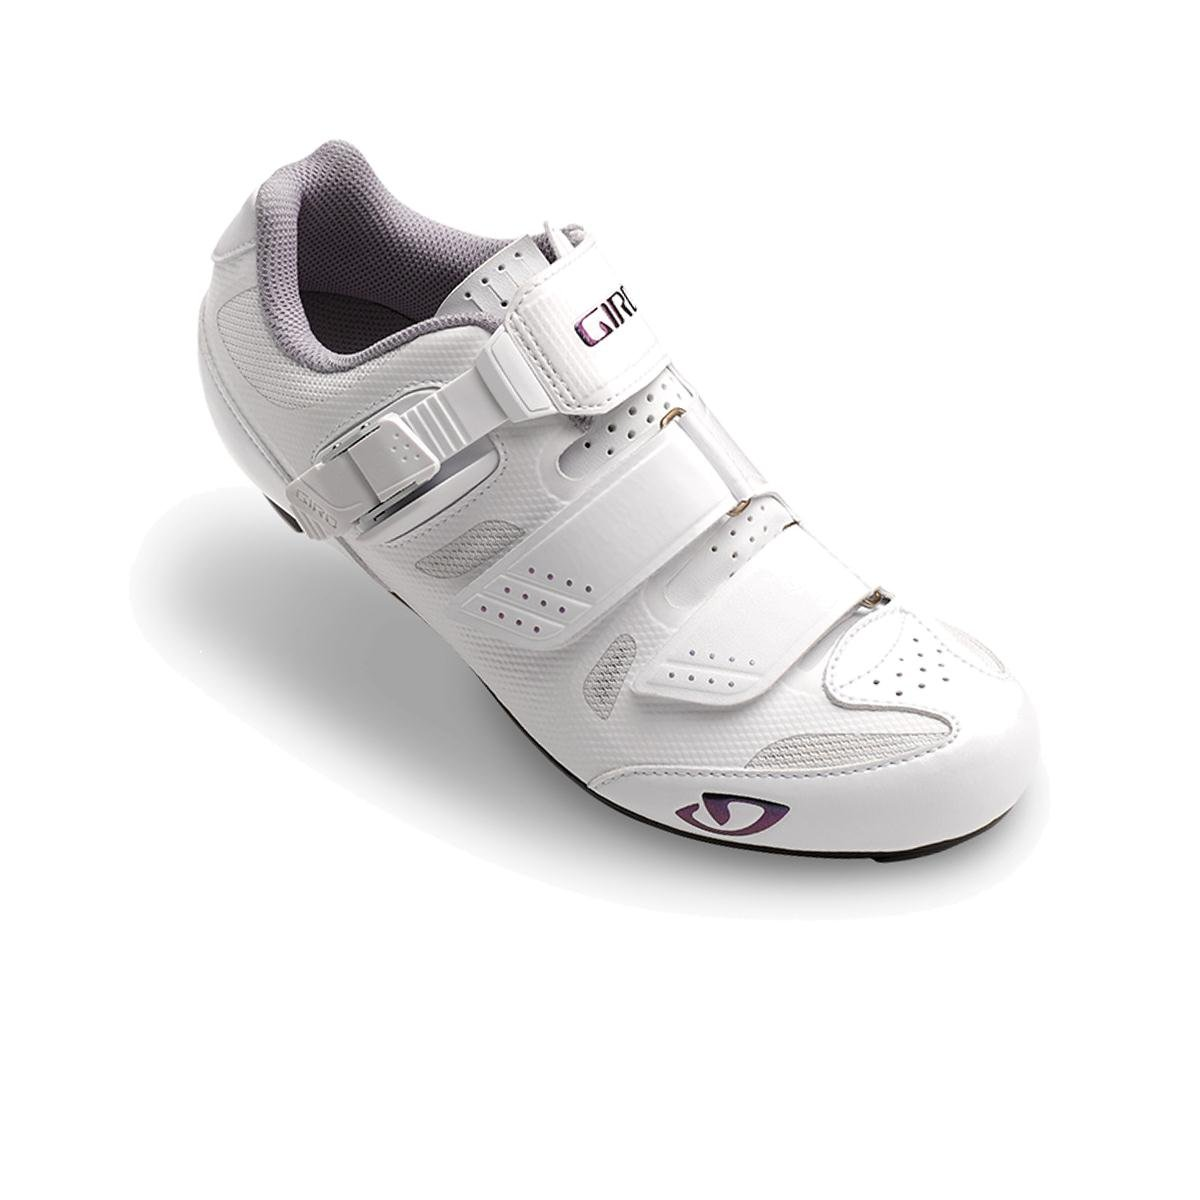 Giro Solara II Womens Road Cycling Shoes B015T74QX0 37.5|White